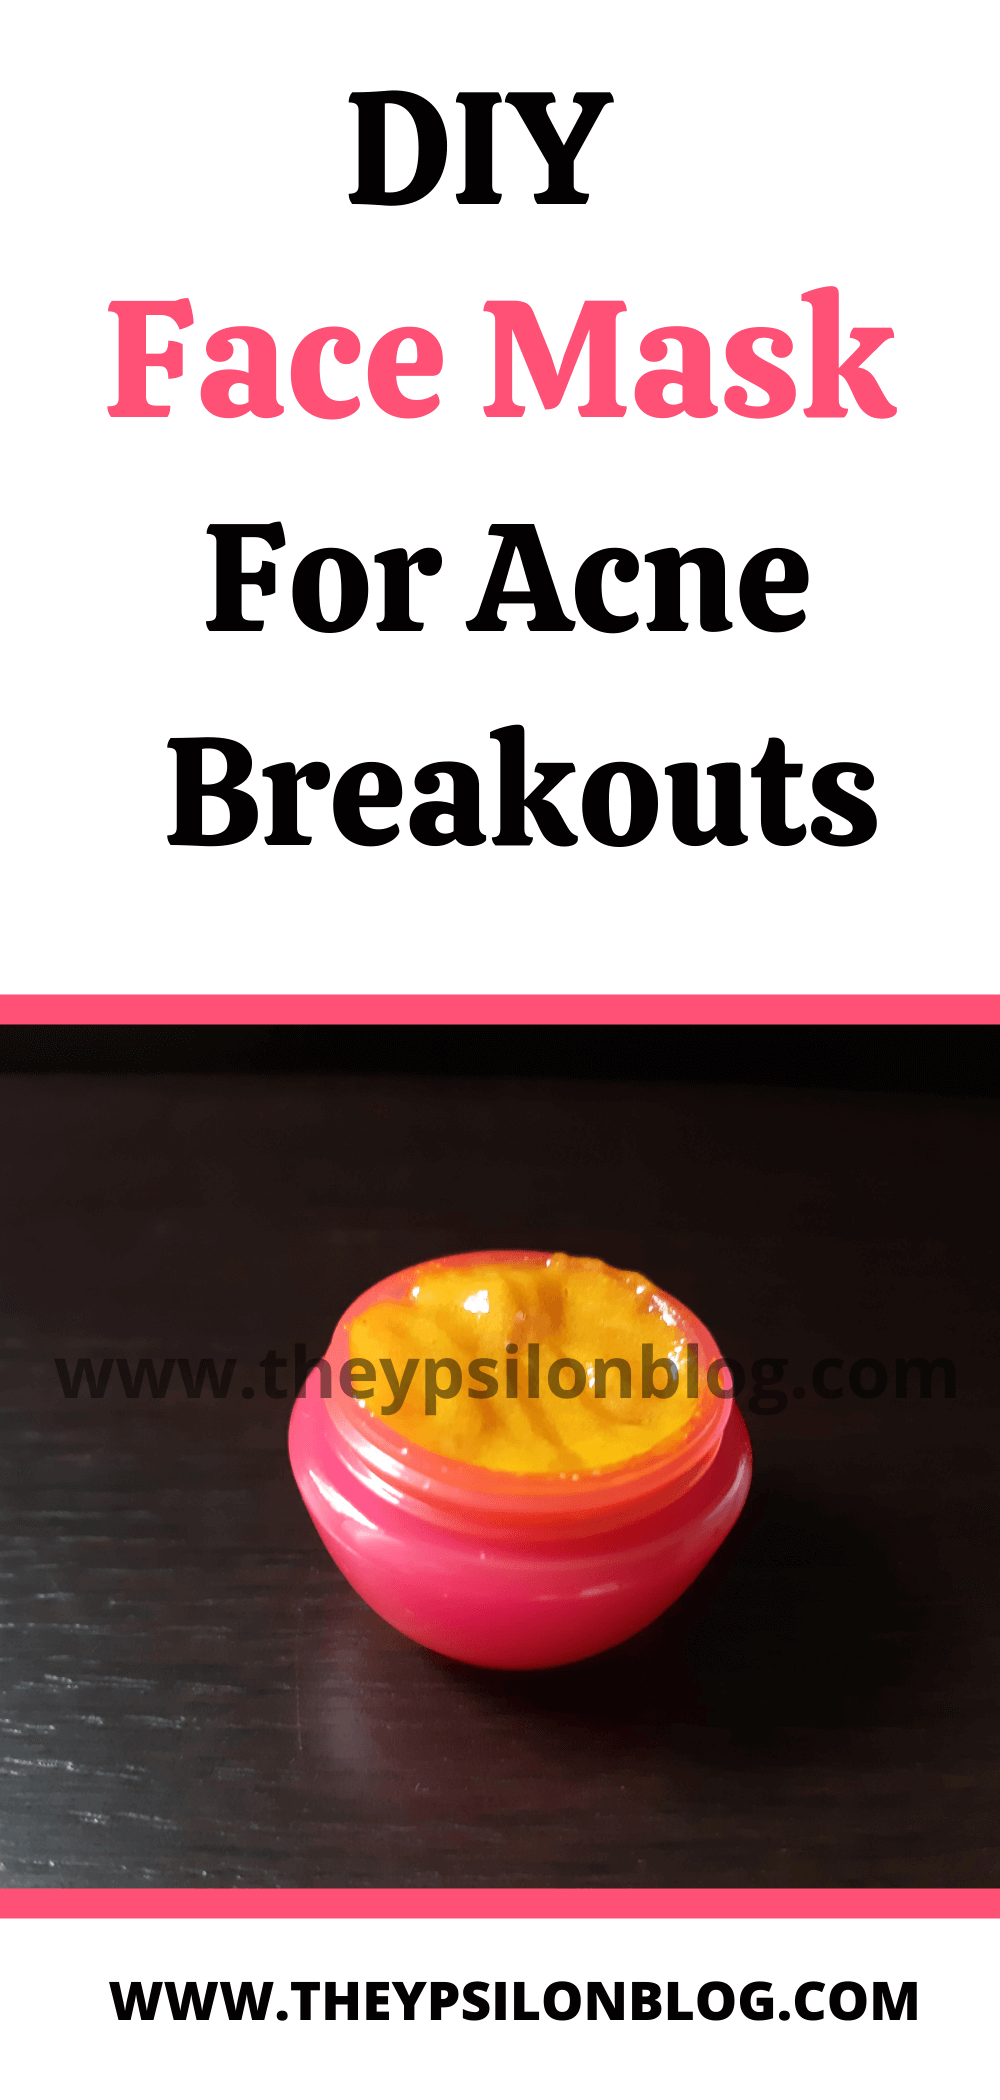 Photo of DIY Face Mask For Acne Breakouts | TheYpsilonBlog